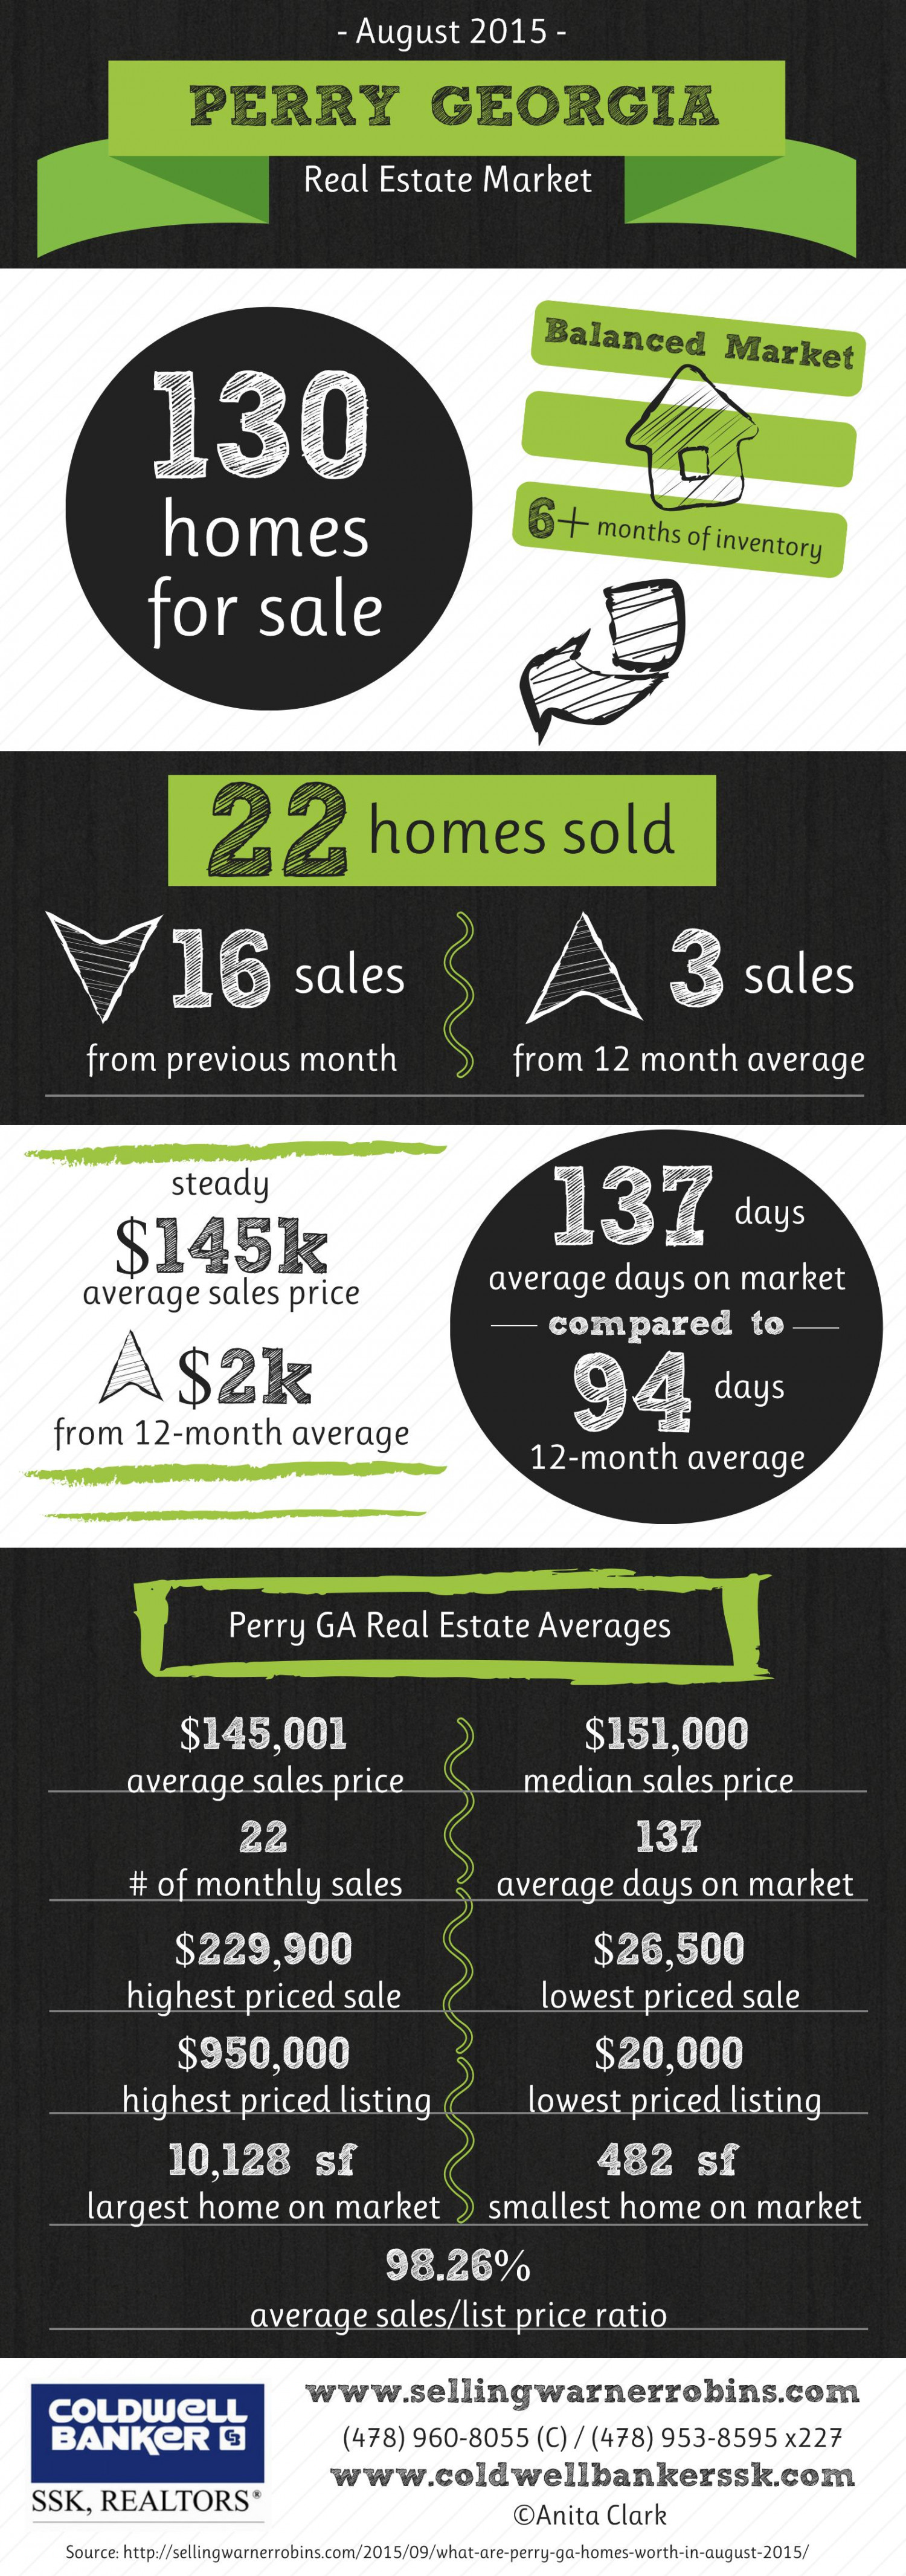 Perry GA Real Estate Market in August 2015 Infographic